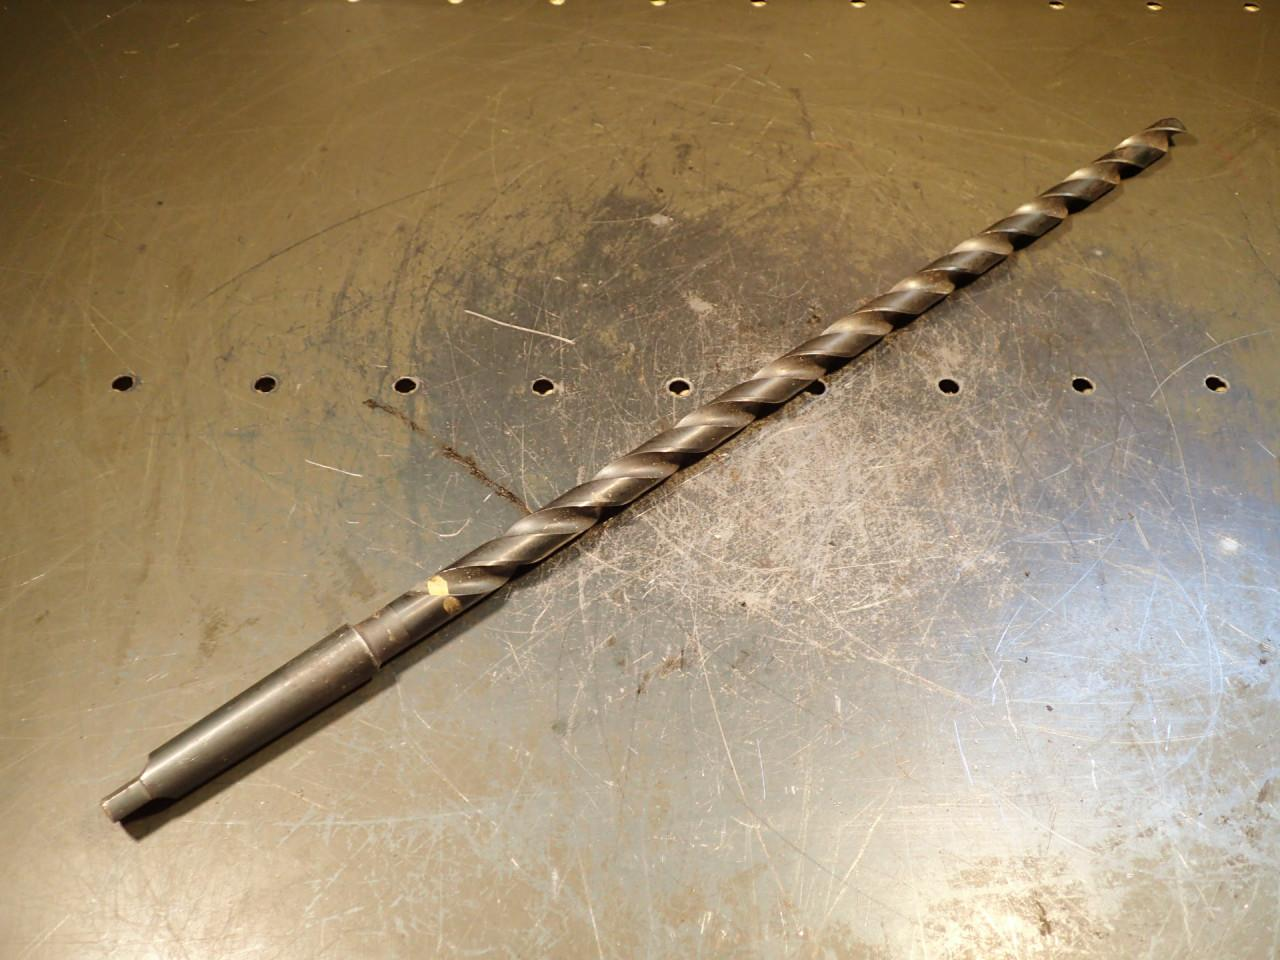 37//64 Extra Long Taper Shank Drill Bit MT-2 Flute 11